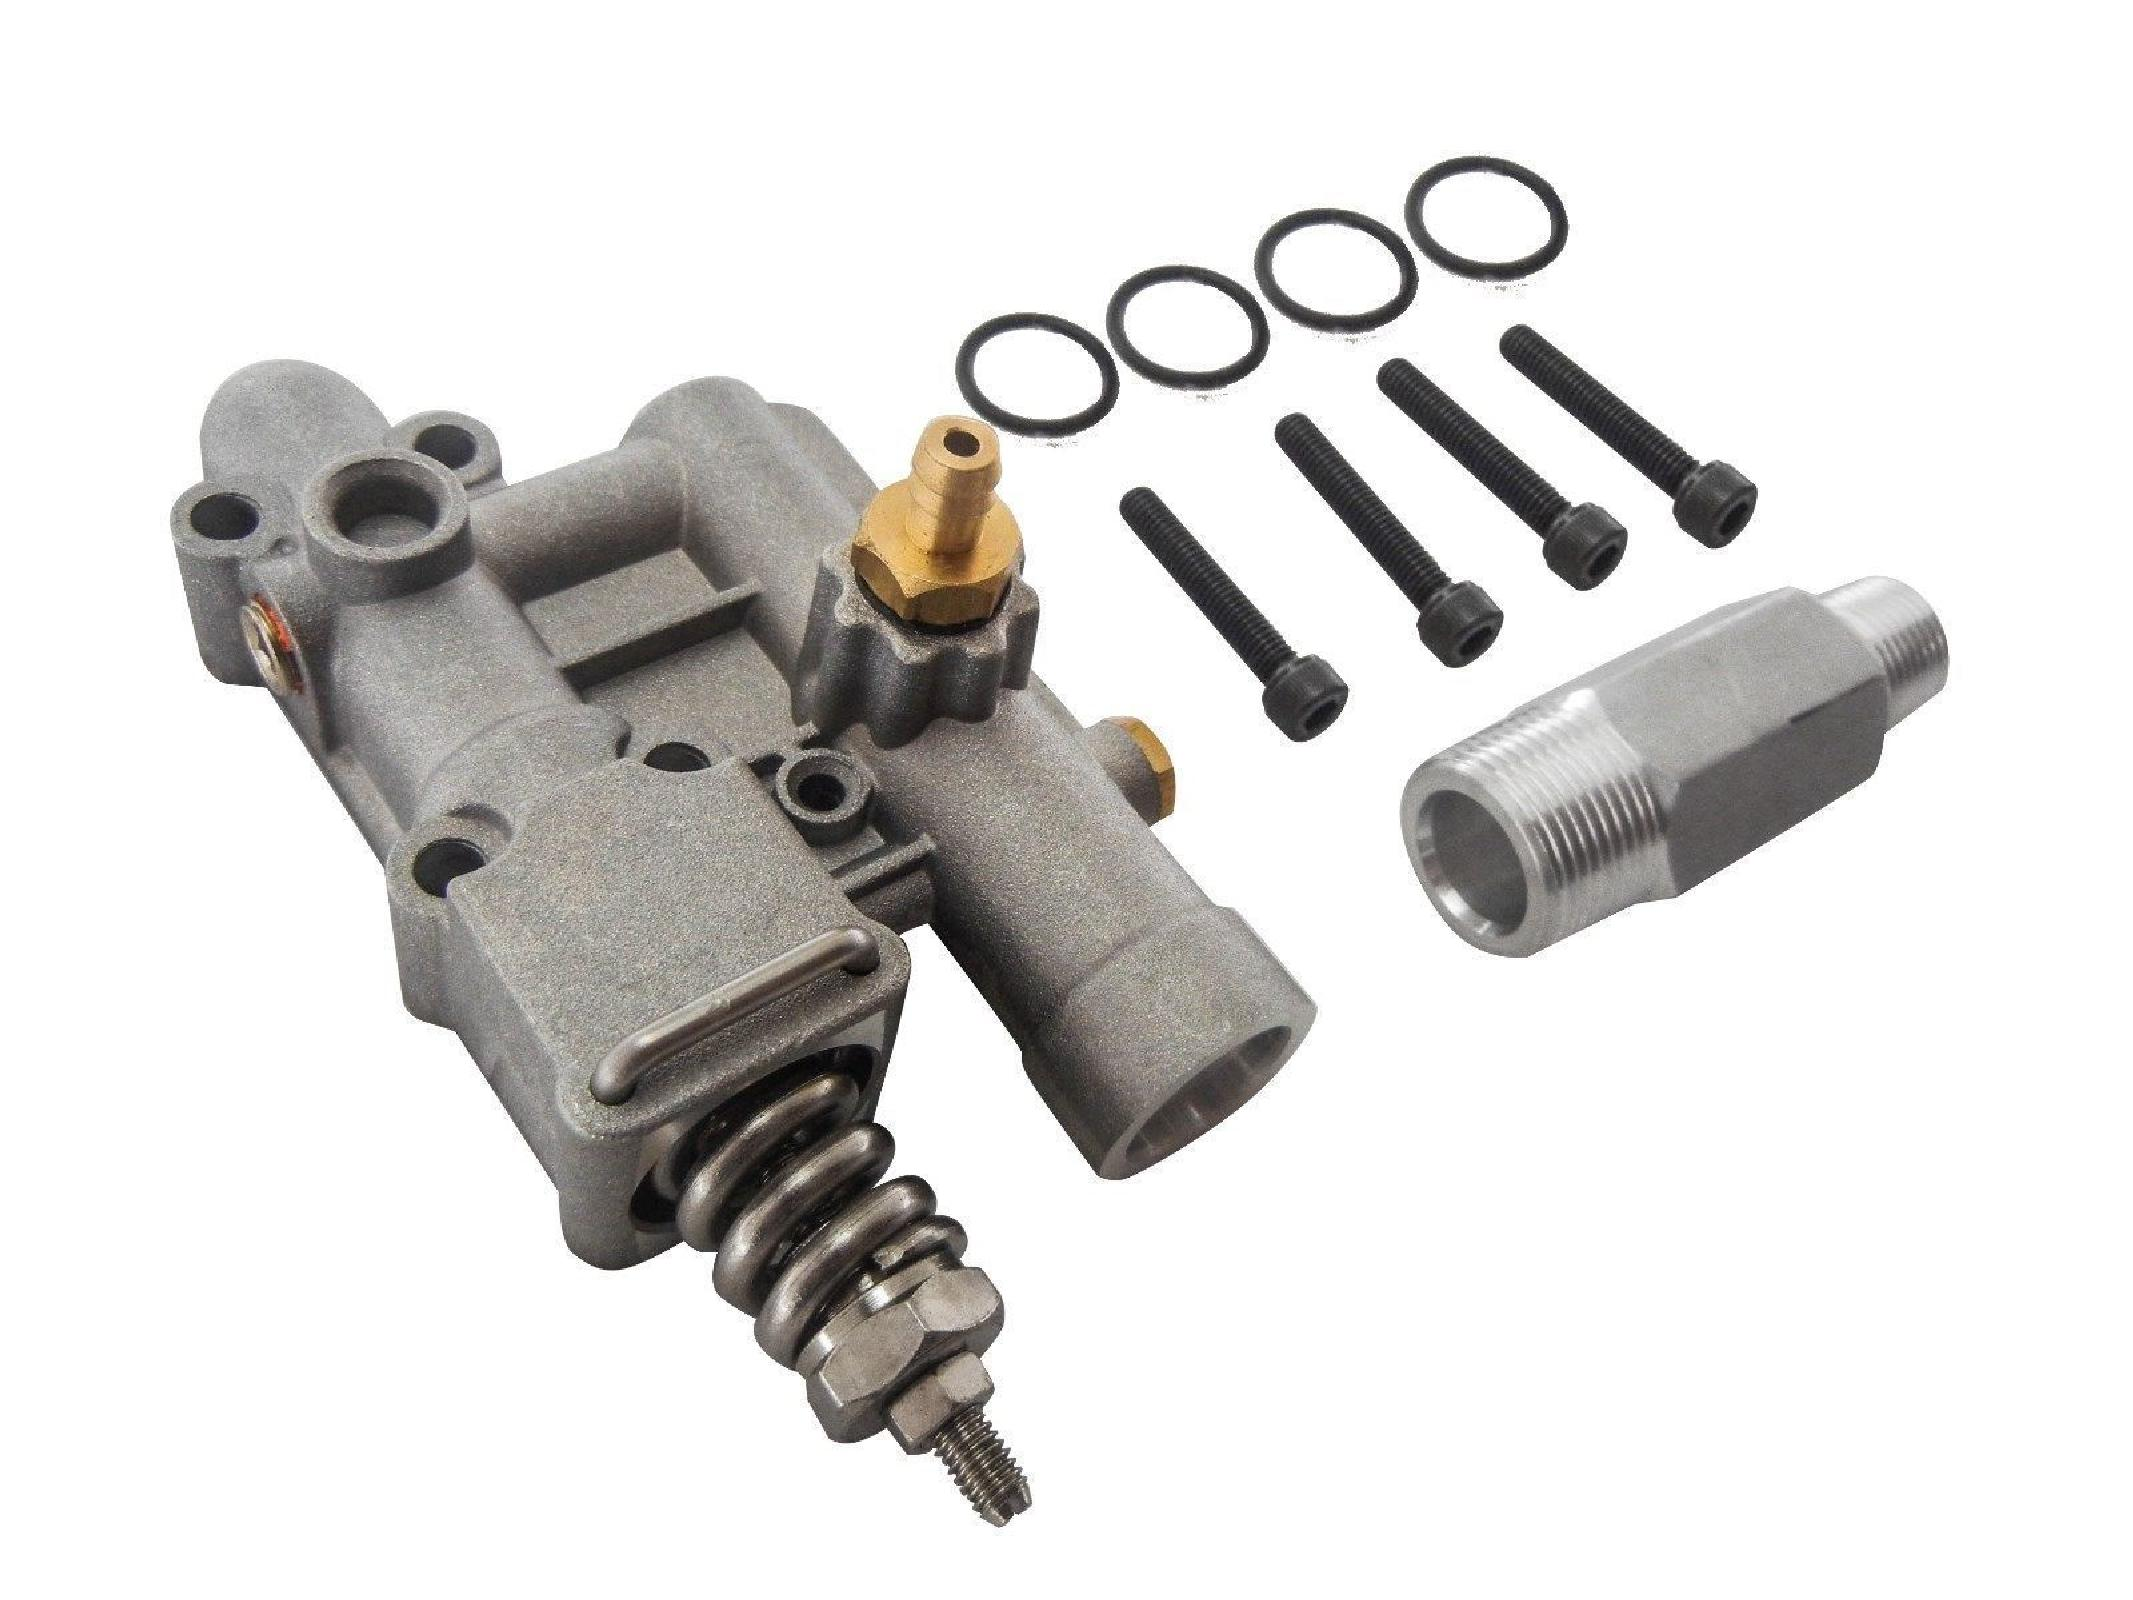 Replacement part# PPMANIFOLD by Proven Part